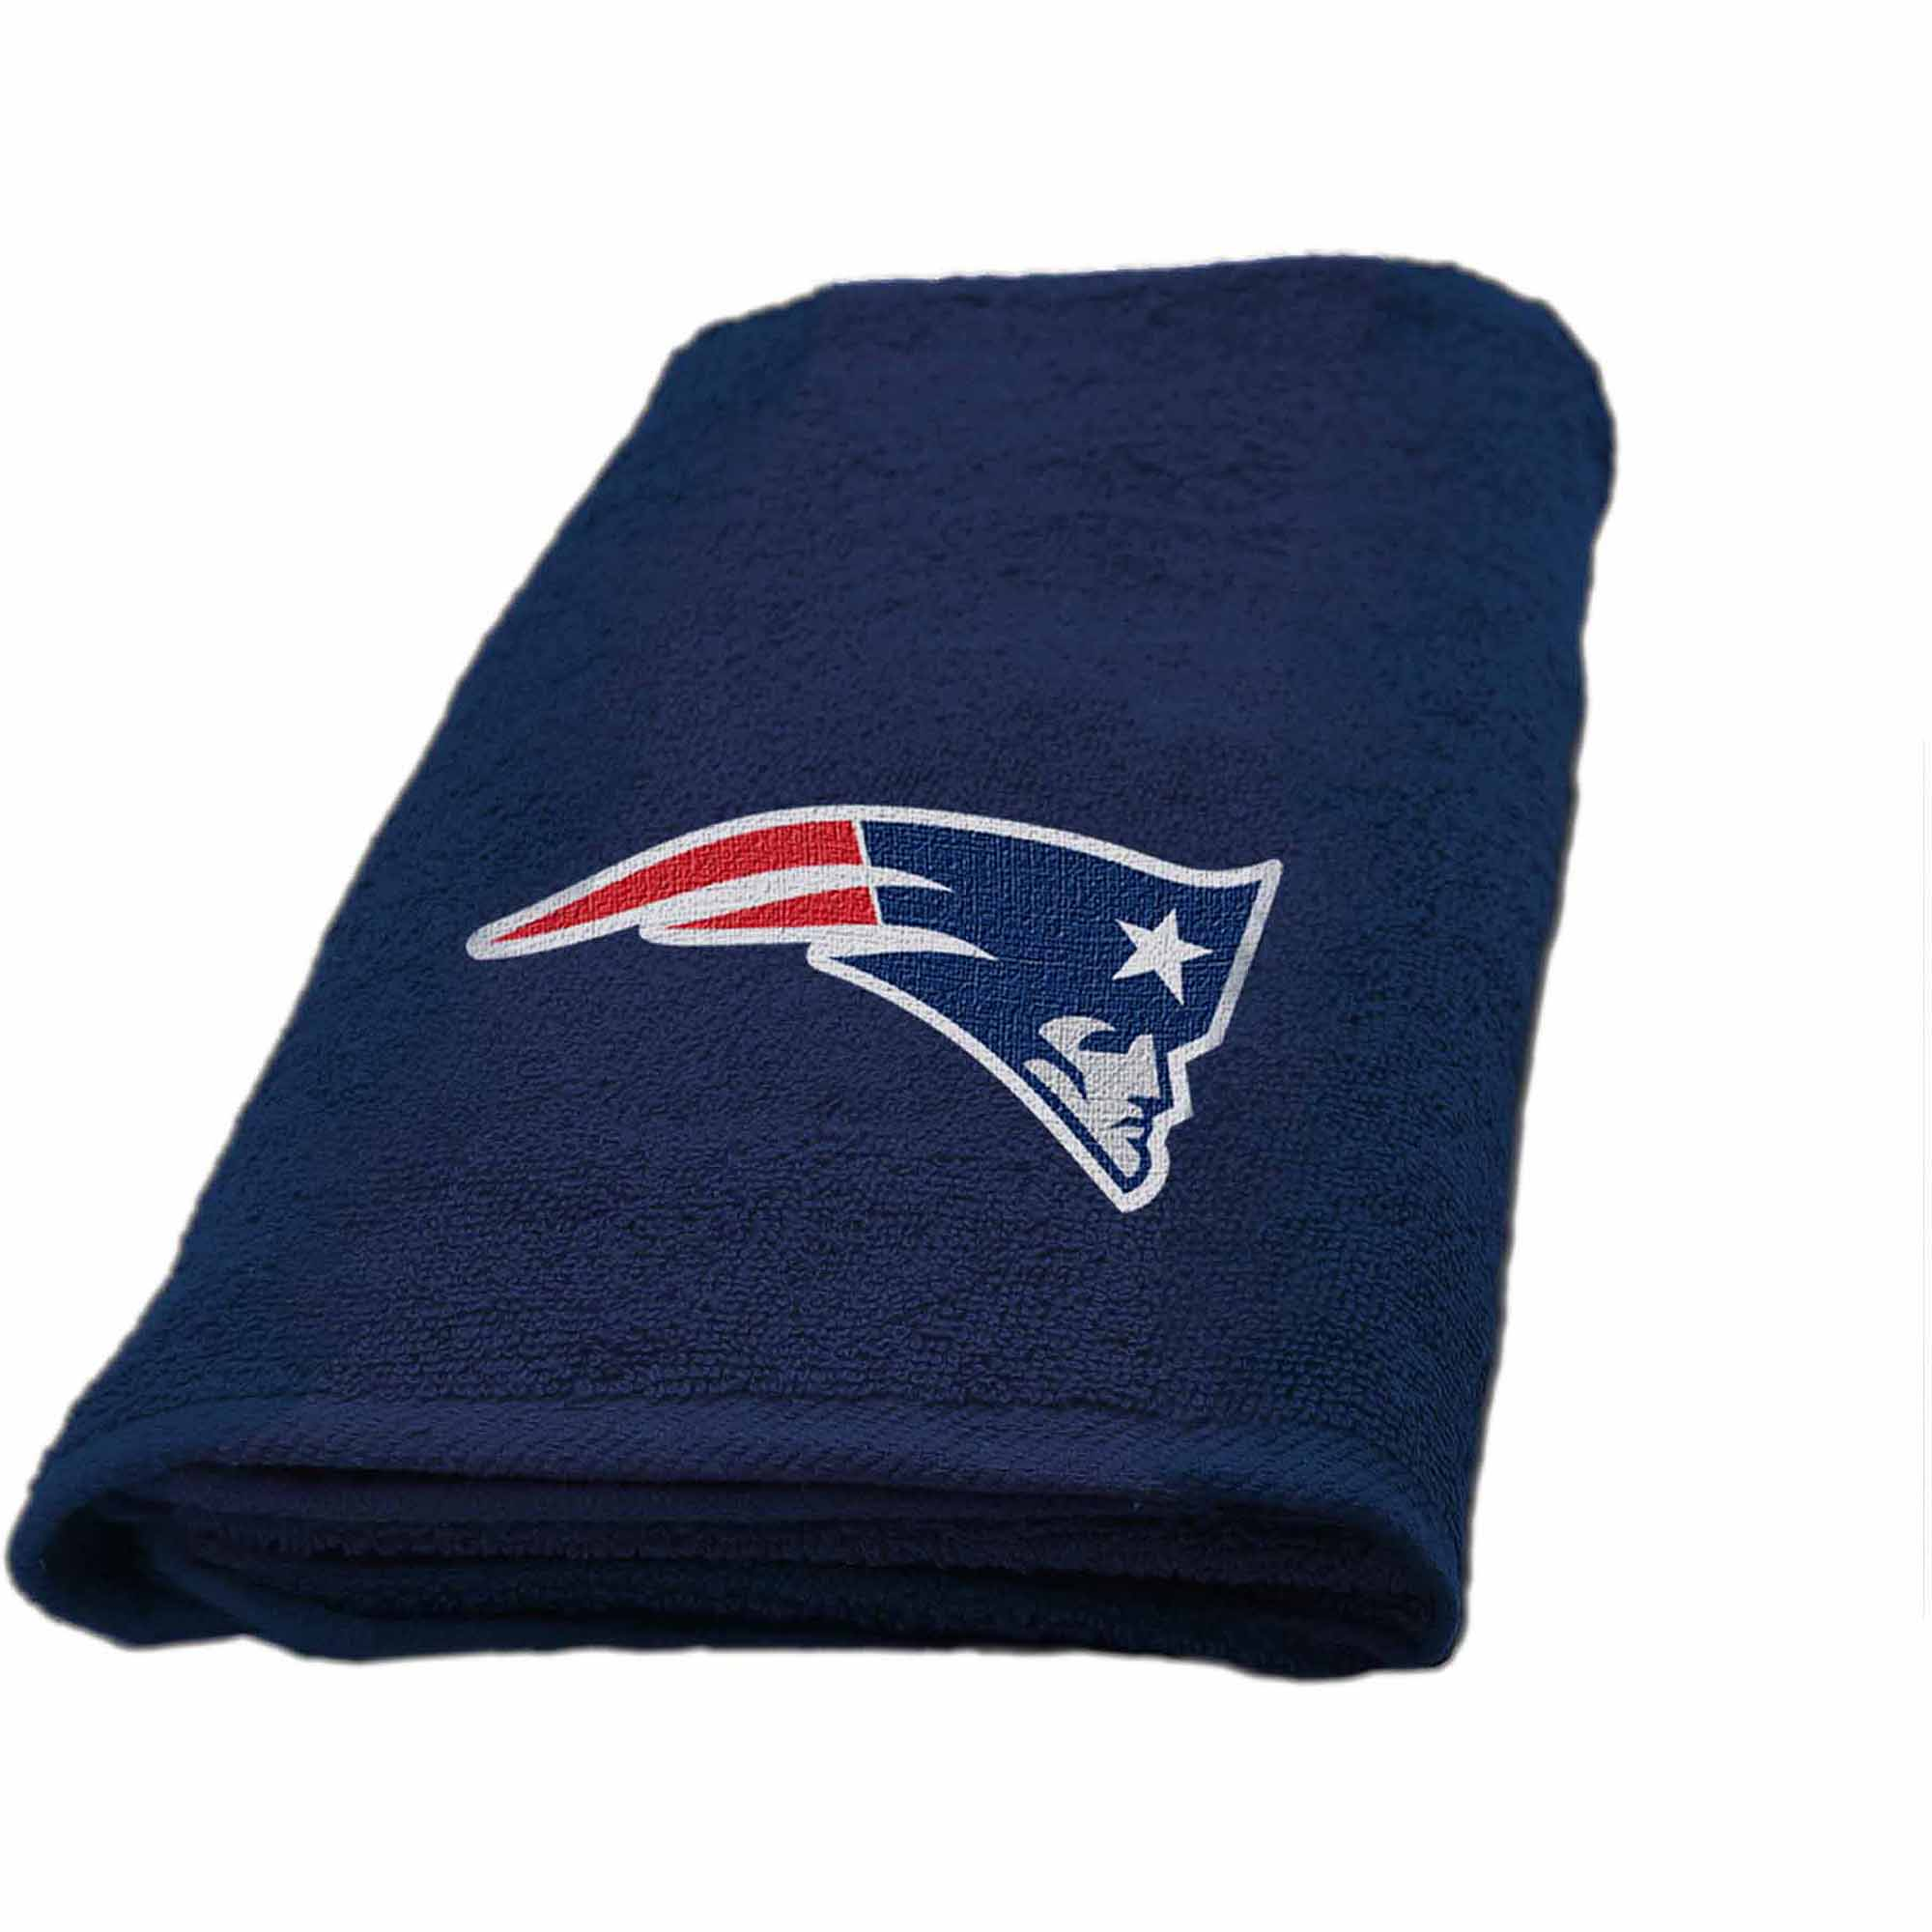 NFL New England Patriots Hand Towel